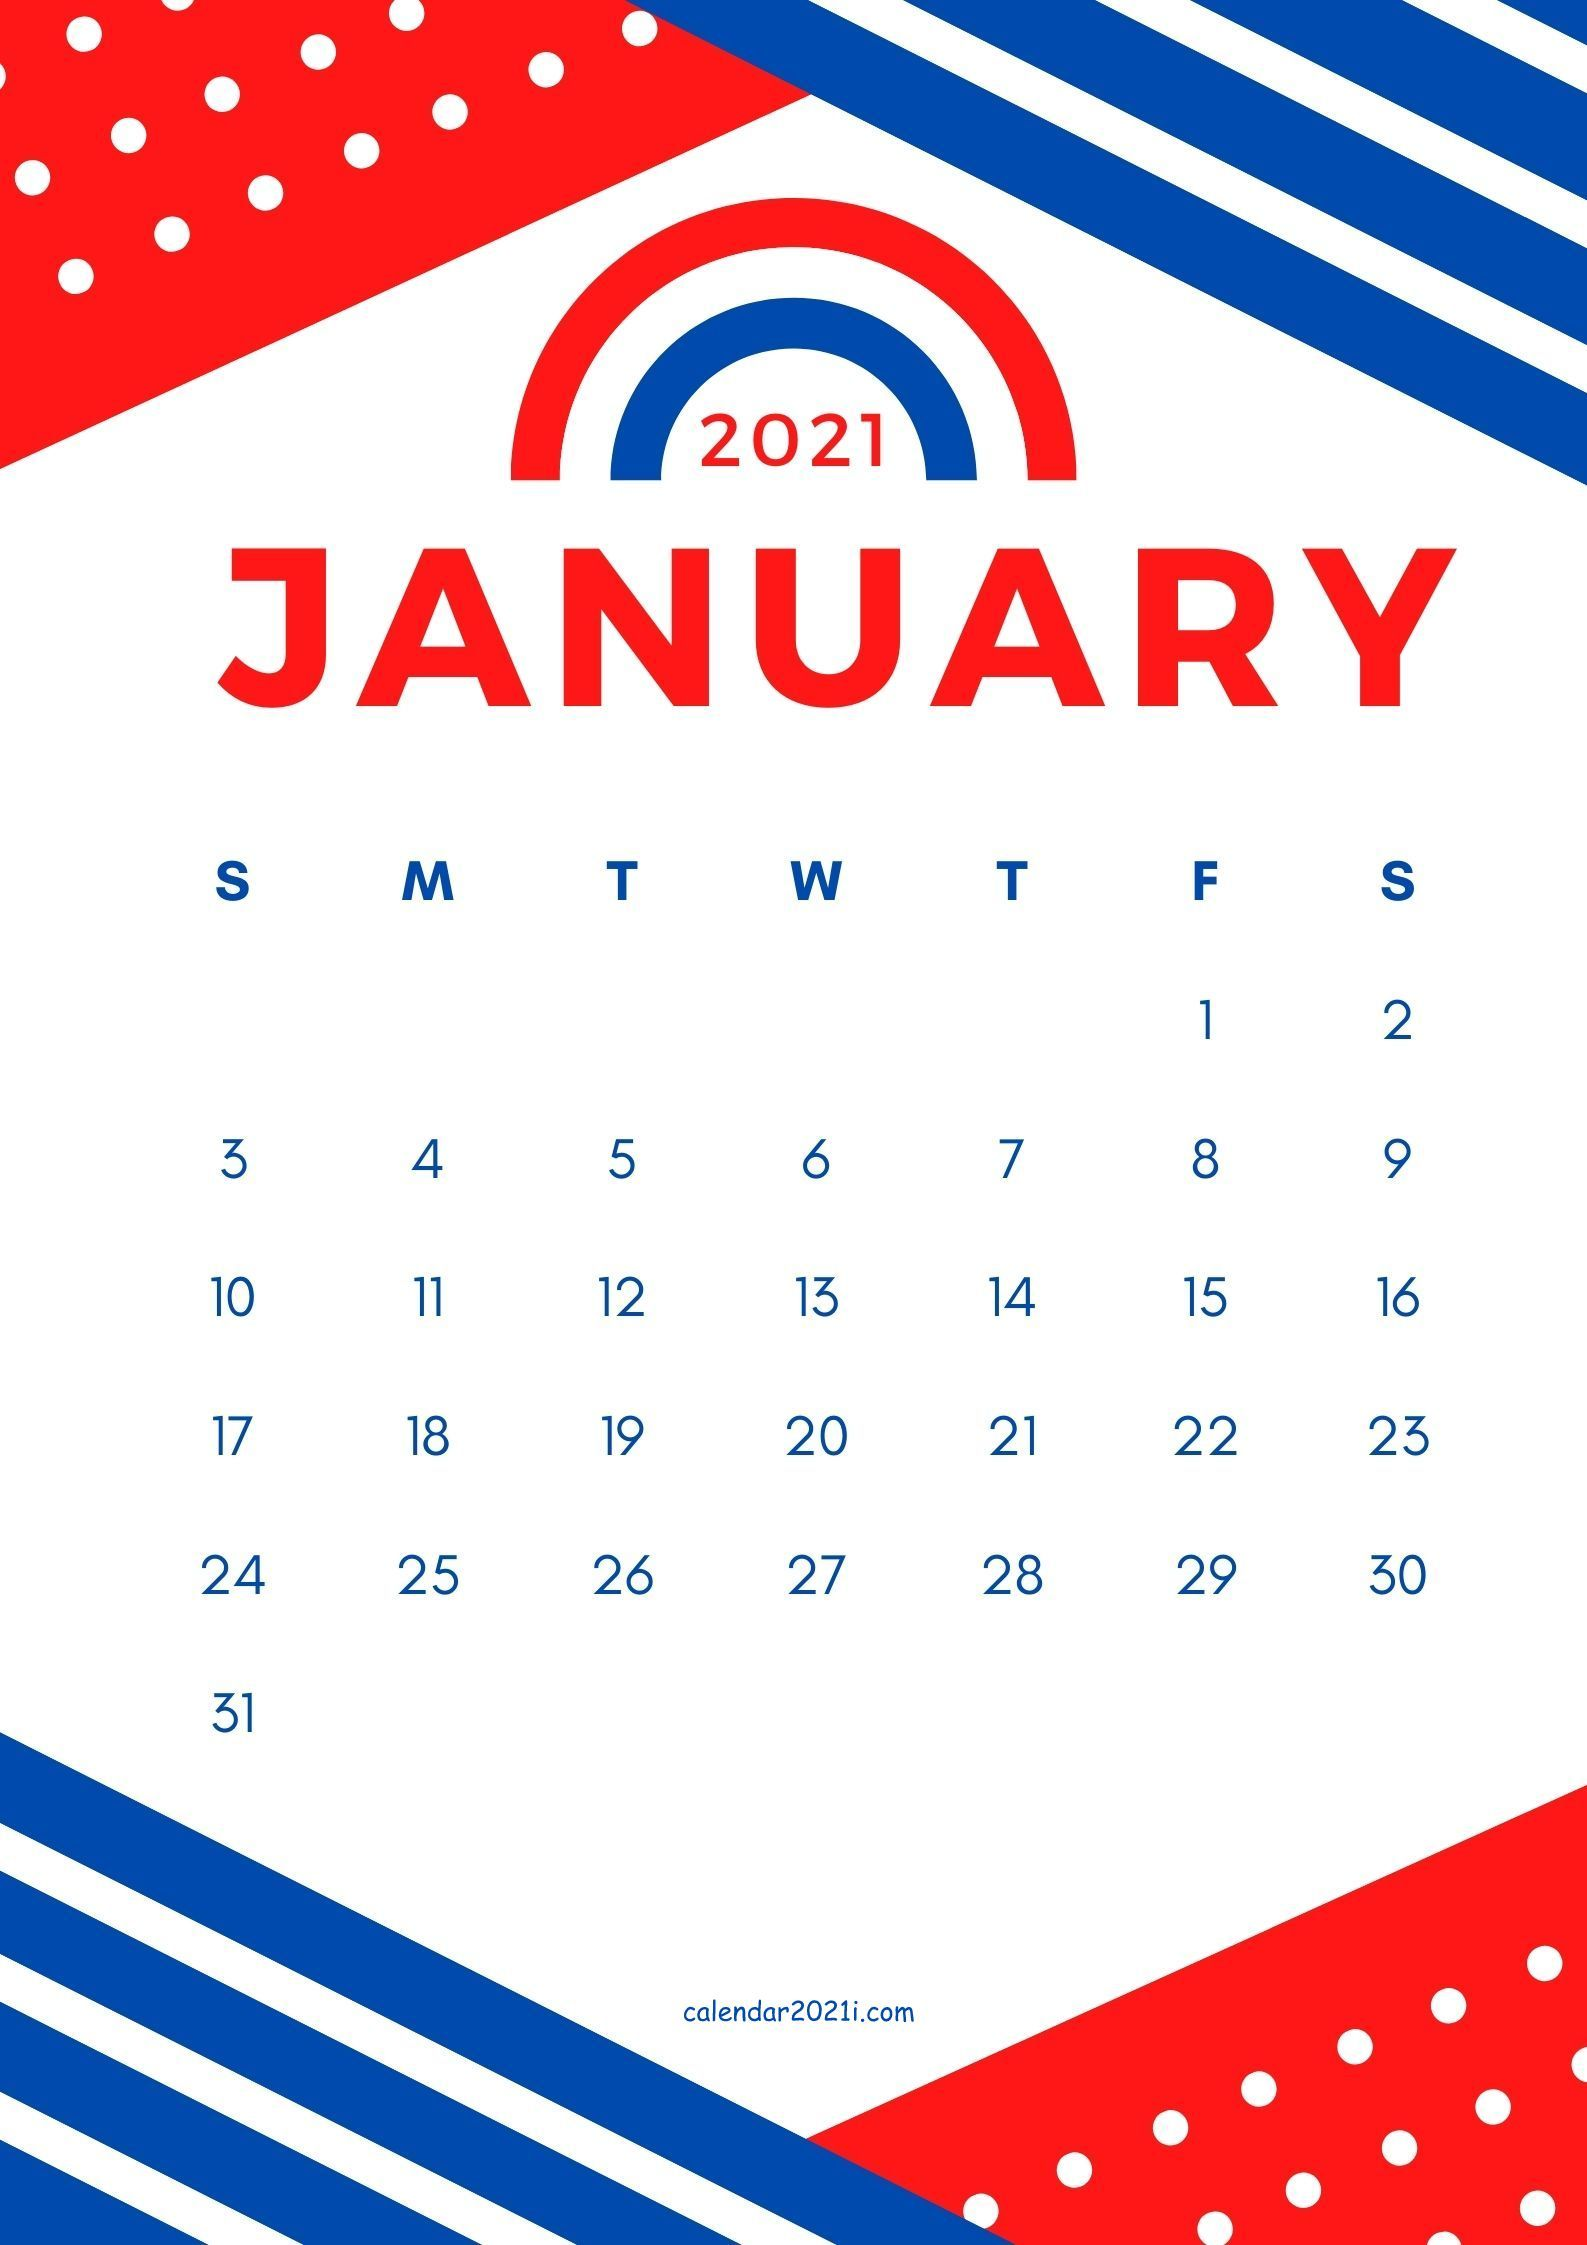 January 2021 Calendar Design Diy Theme Idea In Red And Blue Color Combination In 2020 Calendar Design 2021 Calendar Calendar Design Template